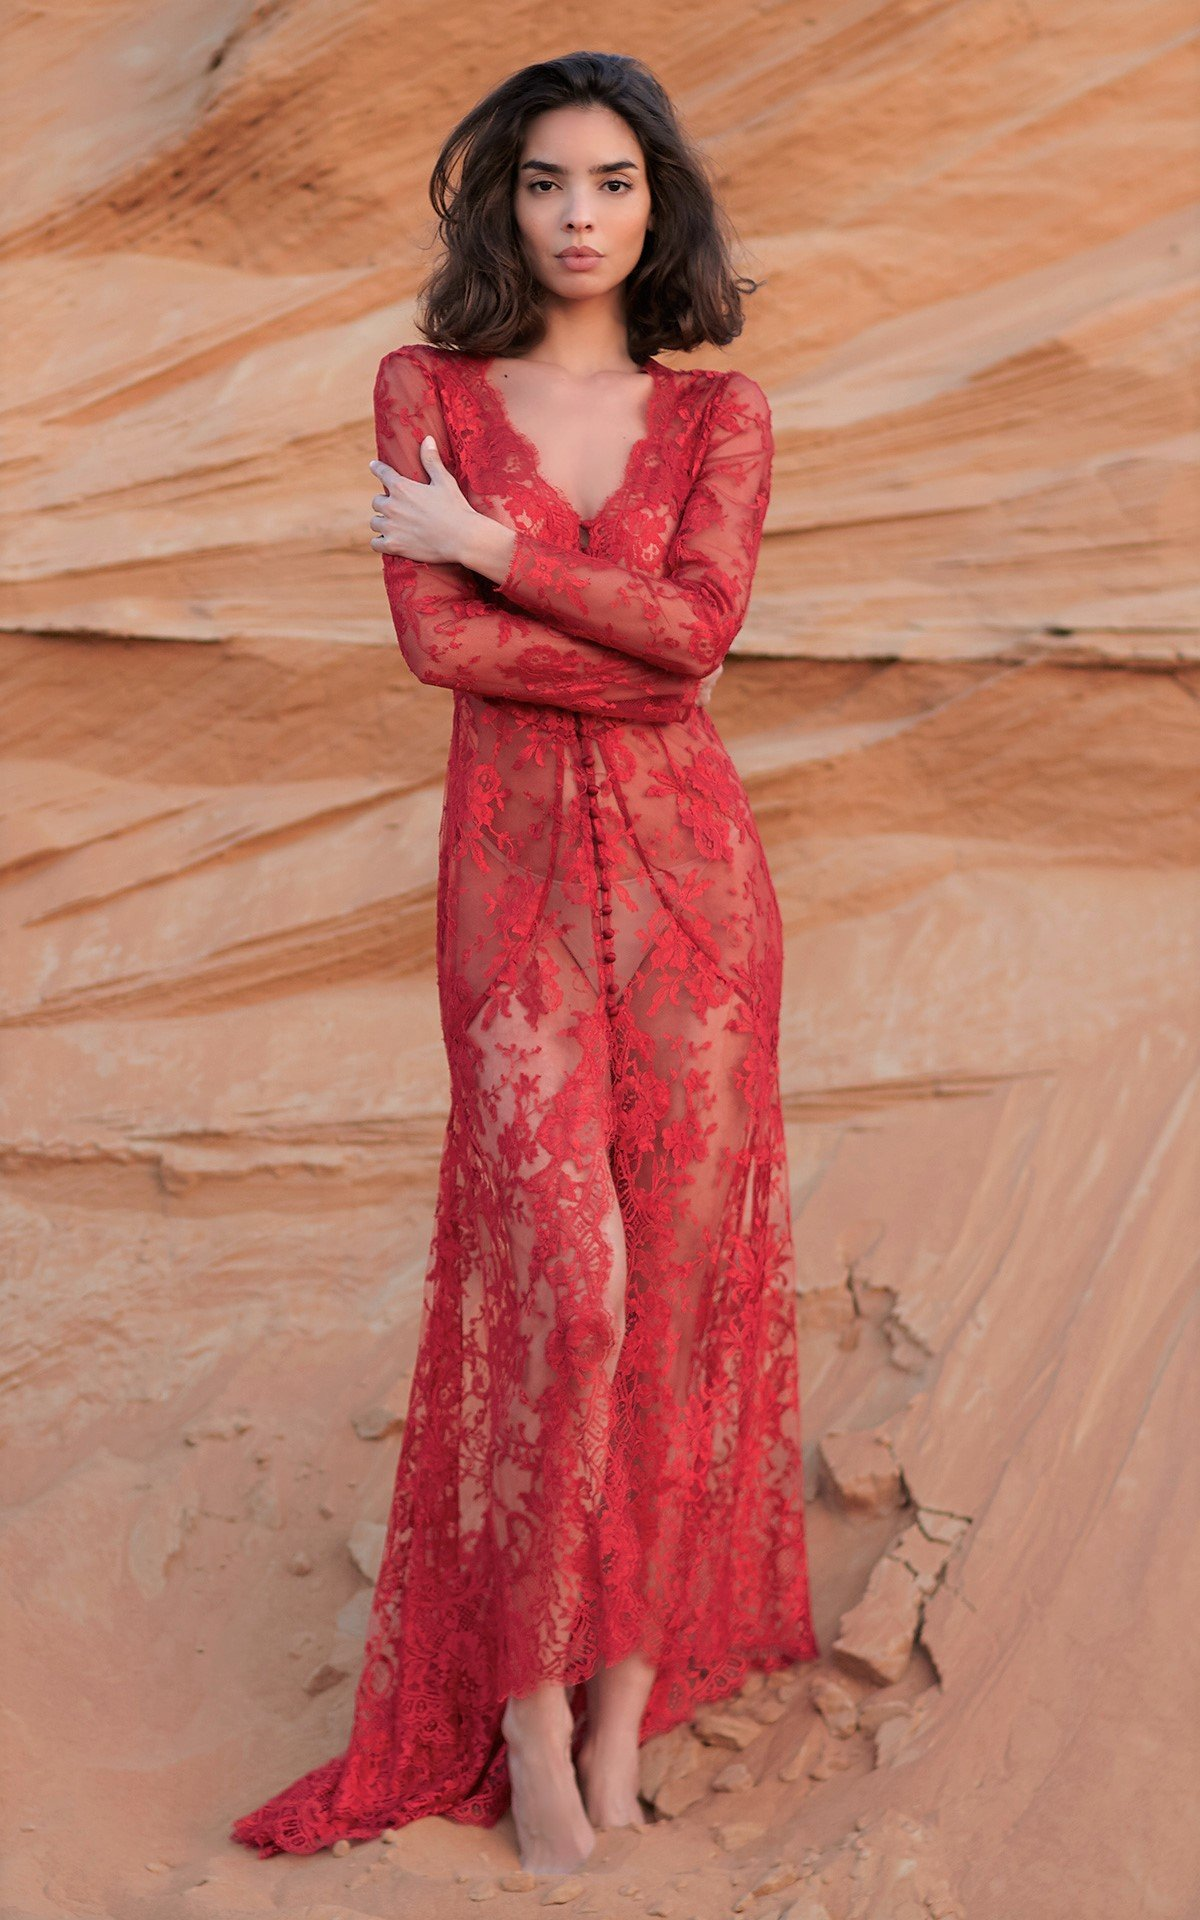 ROSAMOSARIO_A-princess-called-Meera_Munnera-bright-shine-of-light_Lace-dress_Red_2